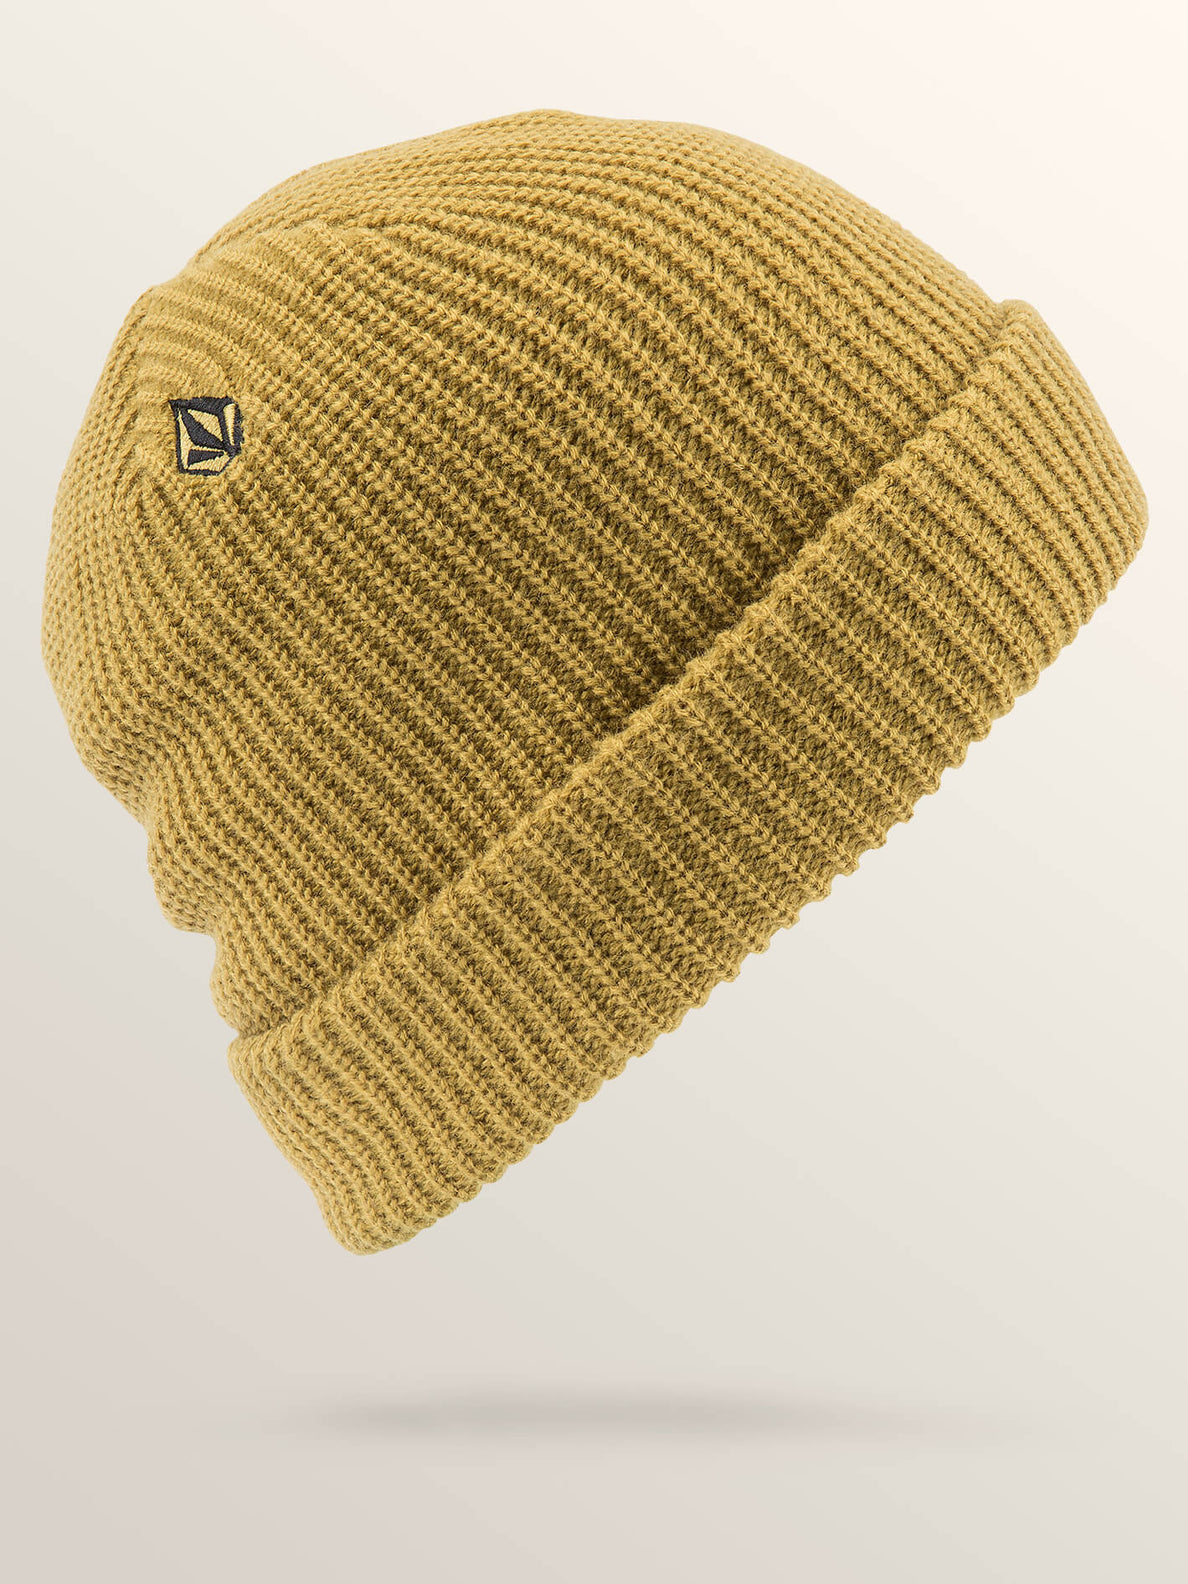 32cccacadf5 Full Stone Beanie In Olive